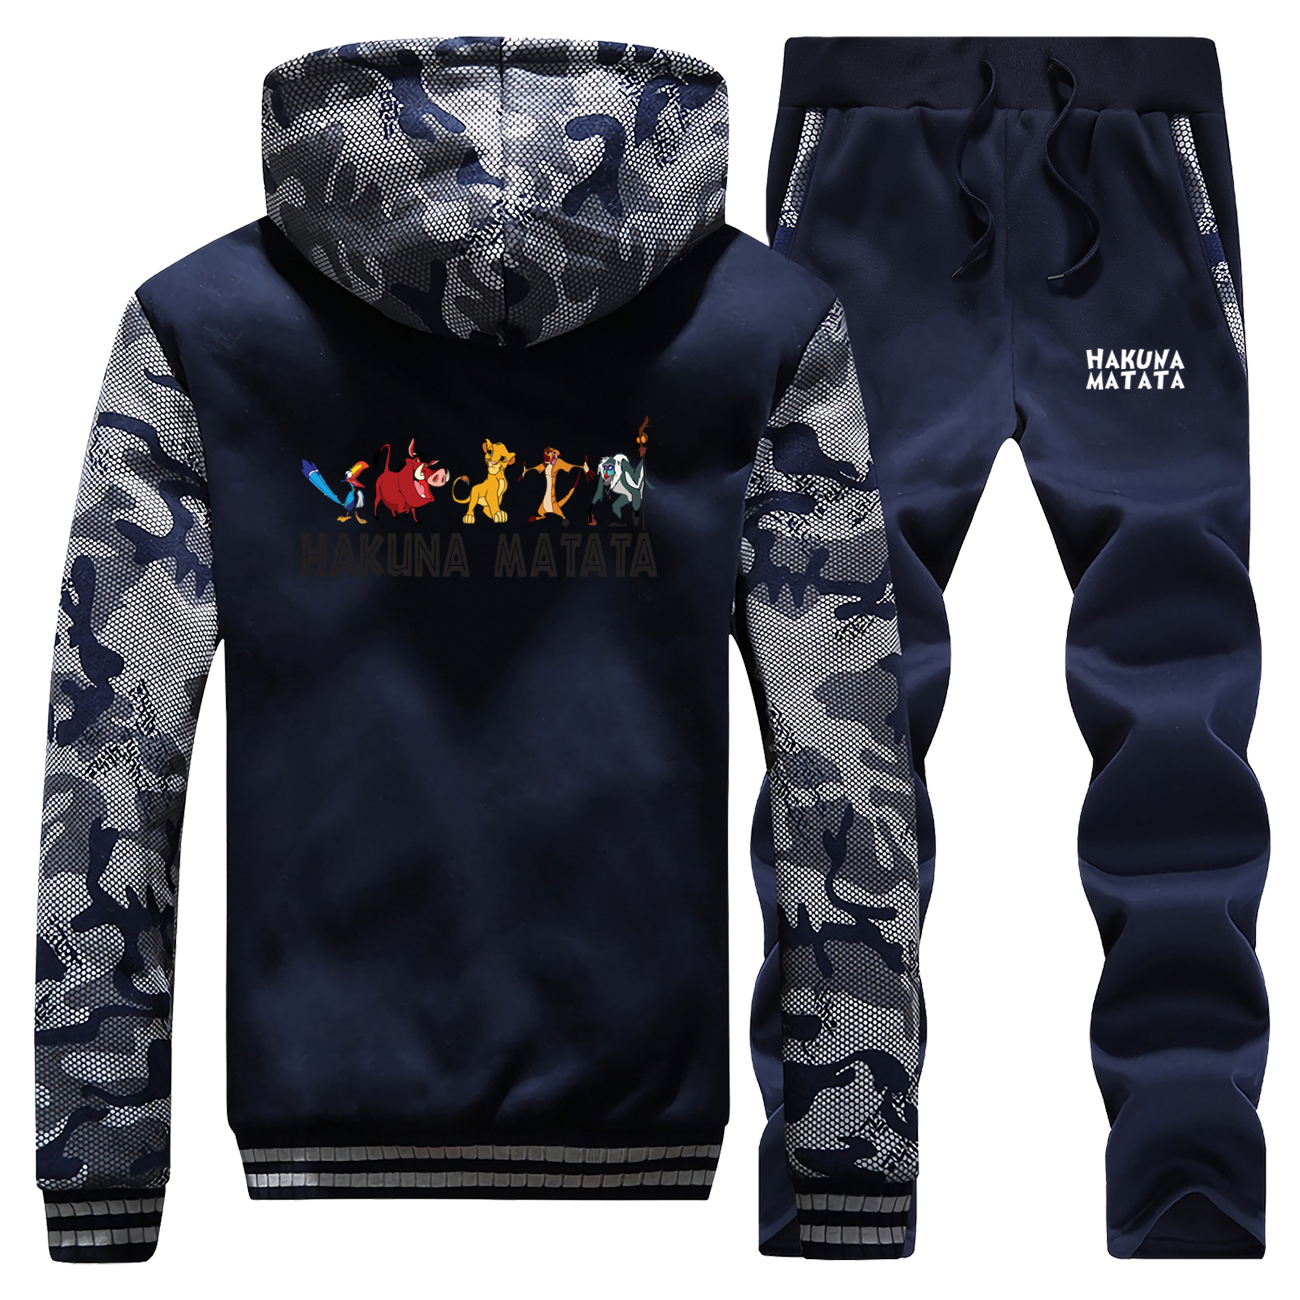 Cartoon Printed New Winter Men Hoodie Sportswear The Lion King Camouflage Coat Thick Long Sleeve Suit Jacket+Pants 2 Piece Set